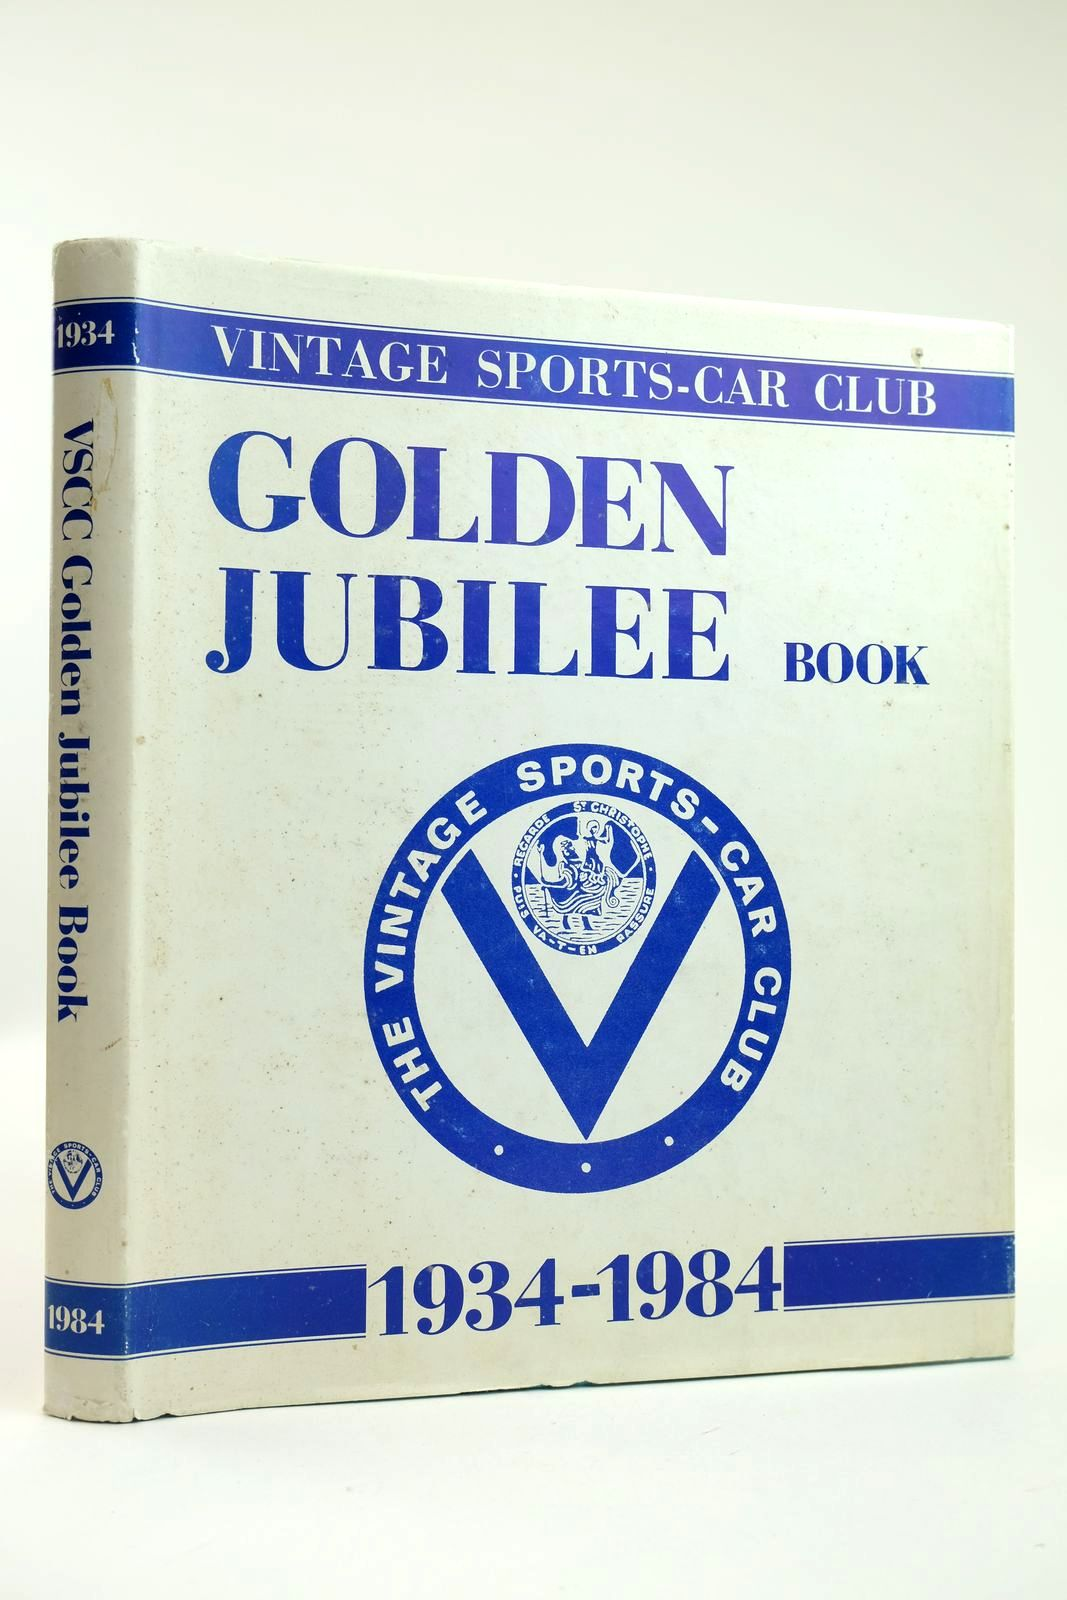 Photo of THE VINTAGE SPORTS-CAR CLUB GOLDEN JUBILEE BOOK 1934-1984